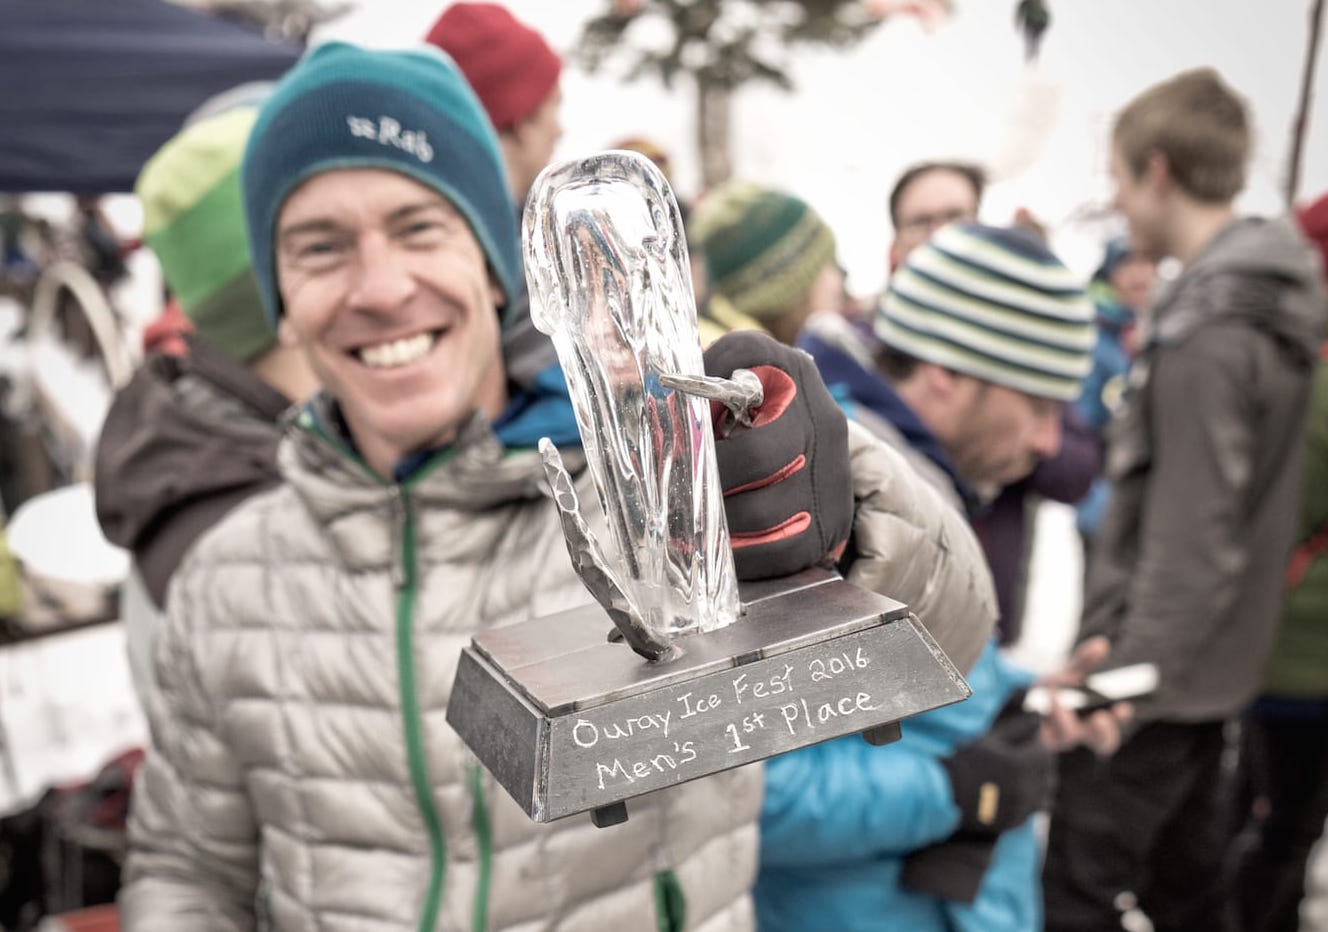 2016 Ouray Ice Festival climbing competition winner poses with his first place trophy.